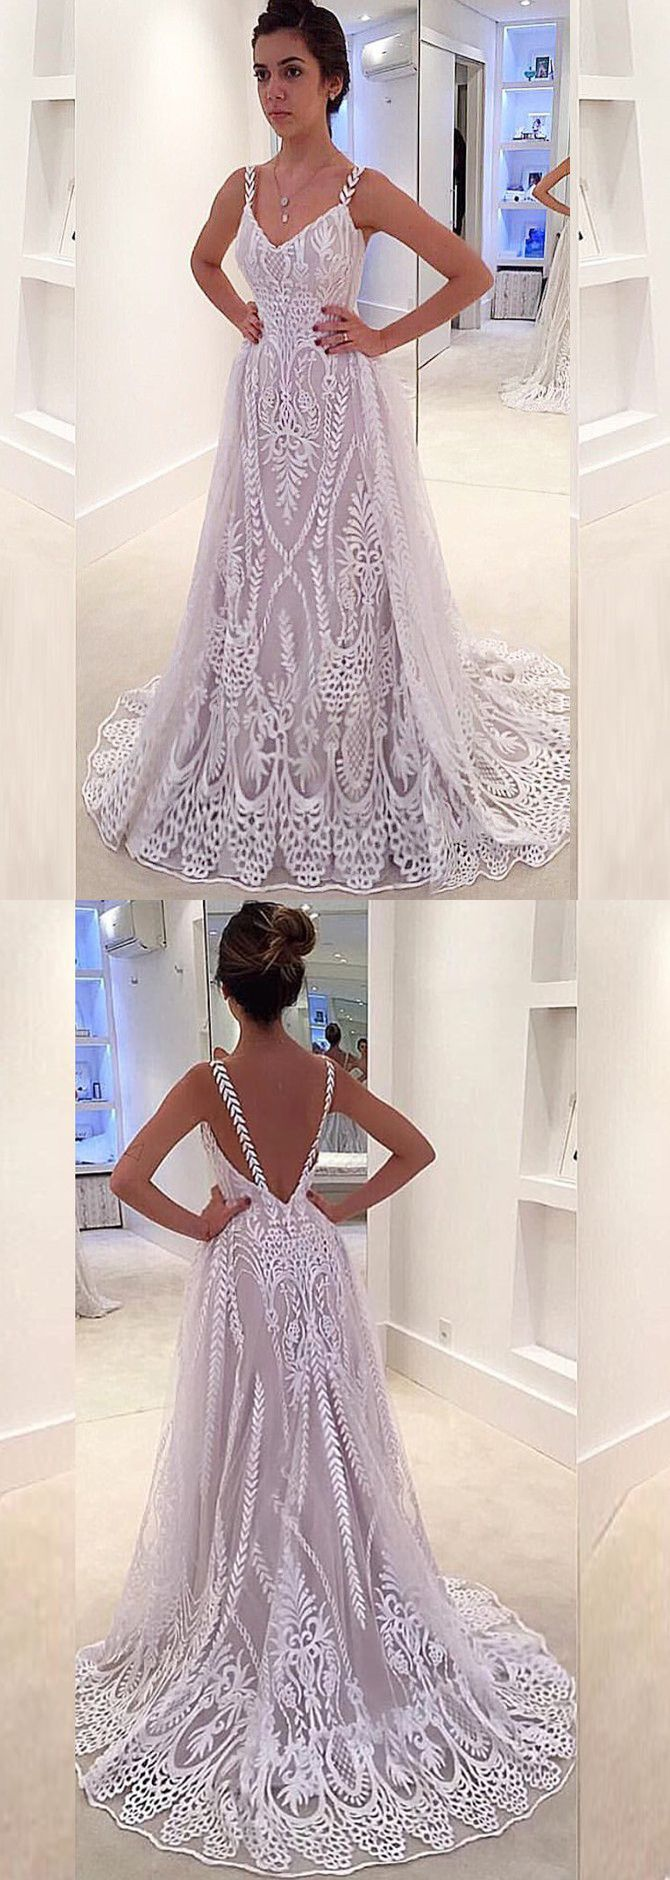 Chiffon wedding dress wedding gowns boho pinterest wedding